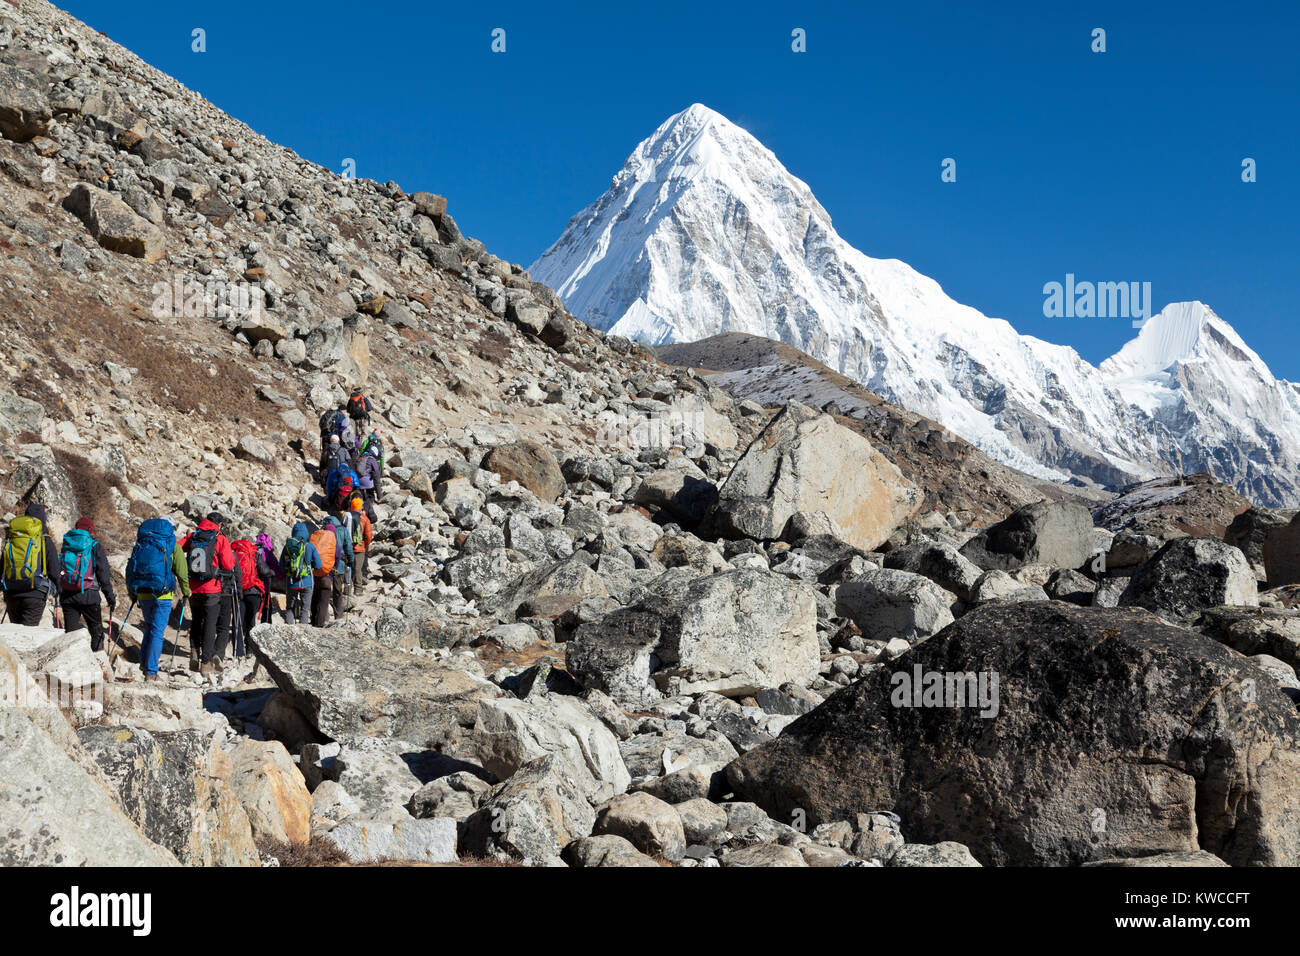 Mounts Everest and Lothse, way to Everest base camp - Stock Image